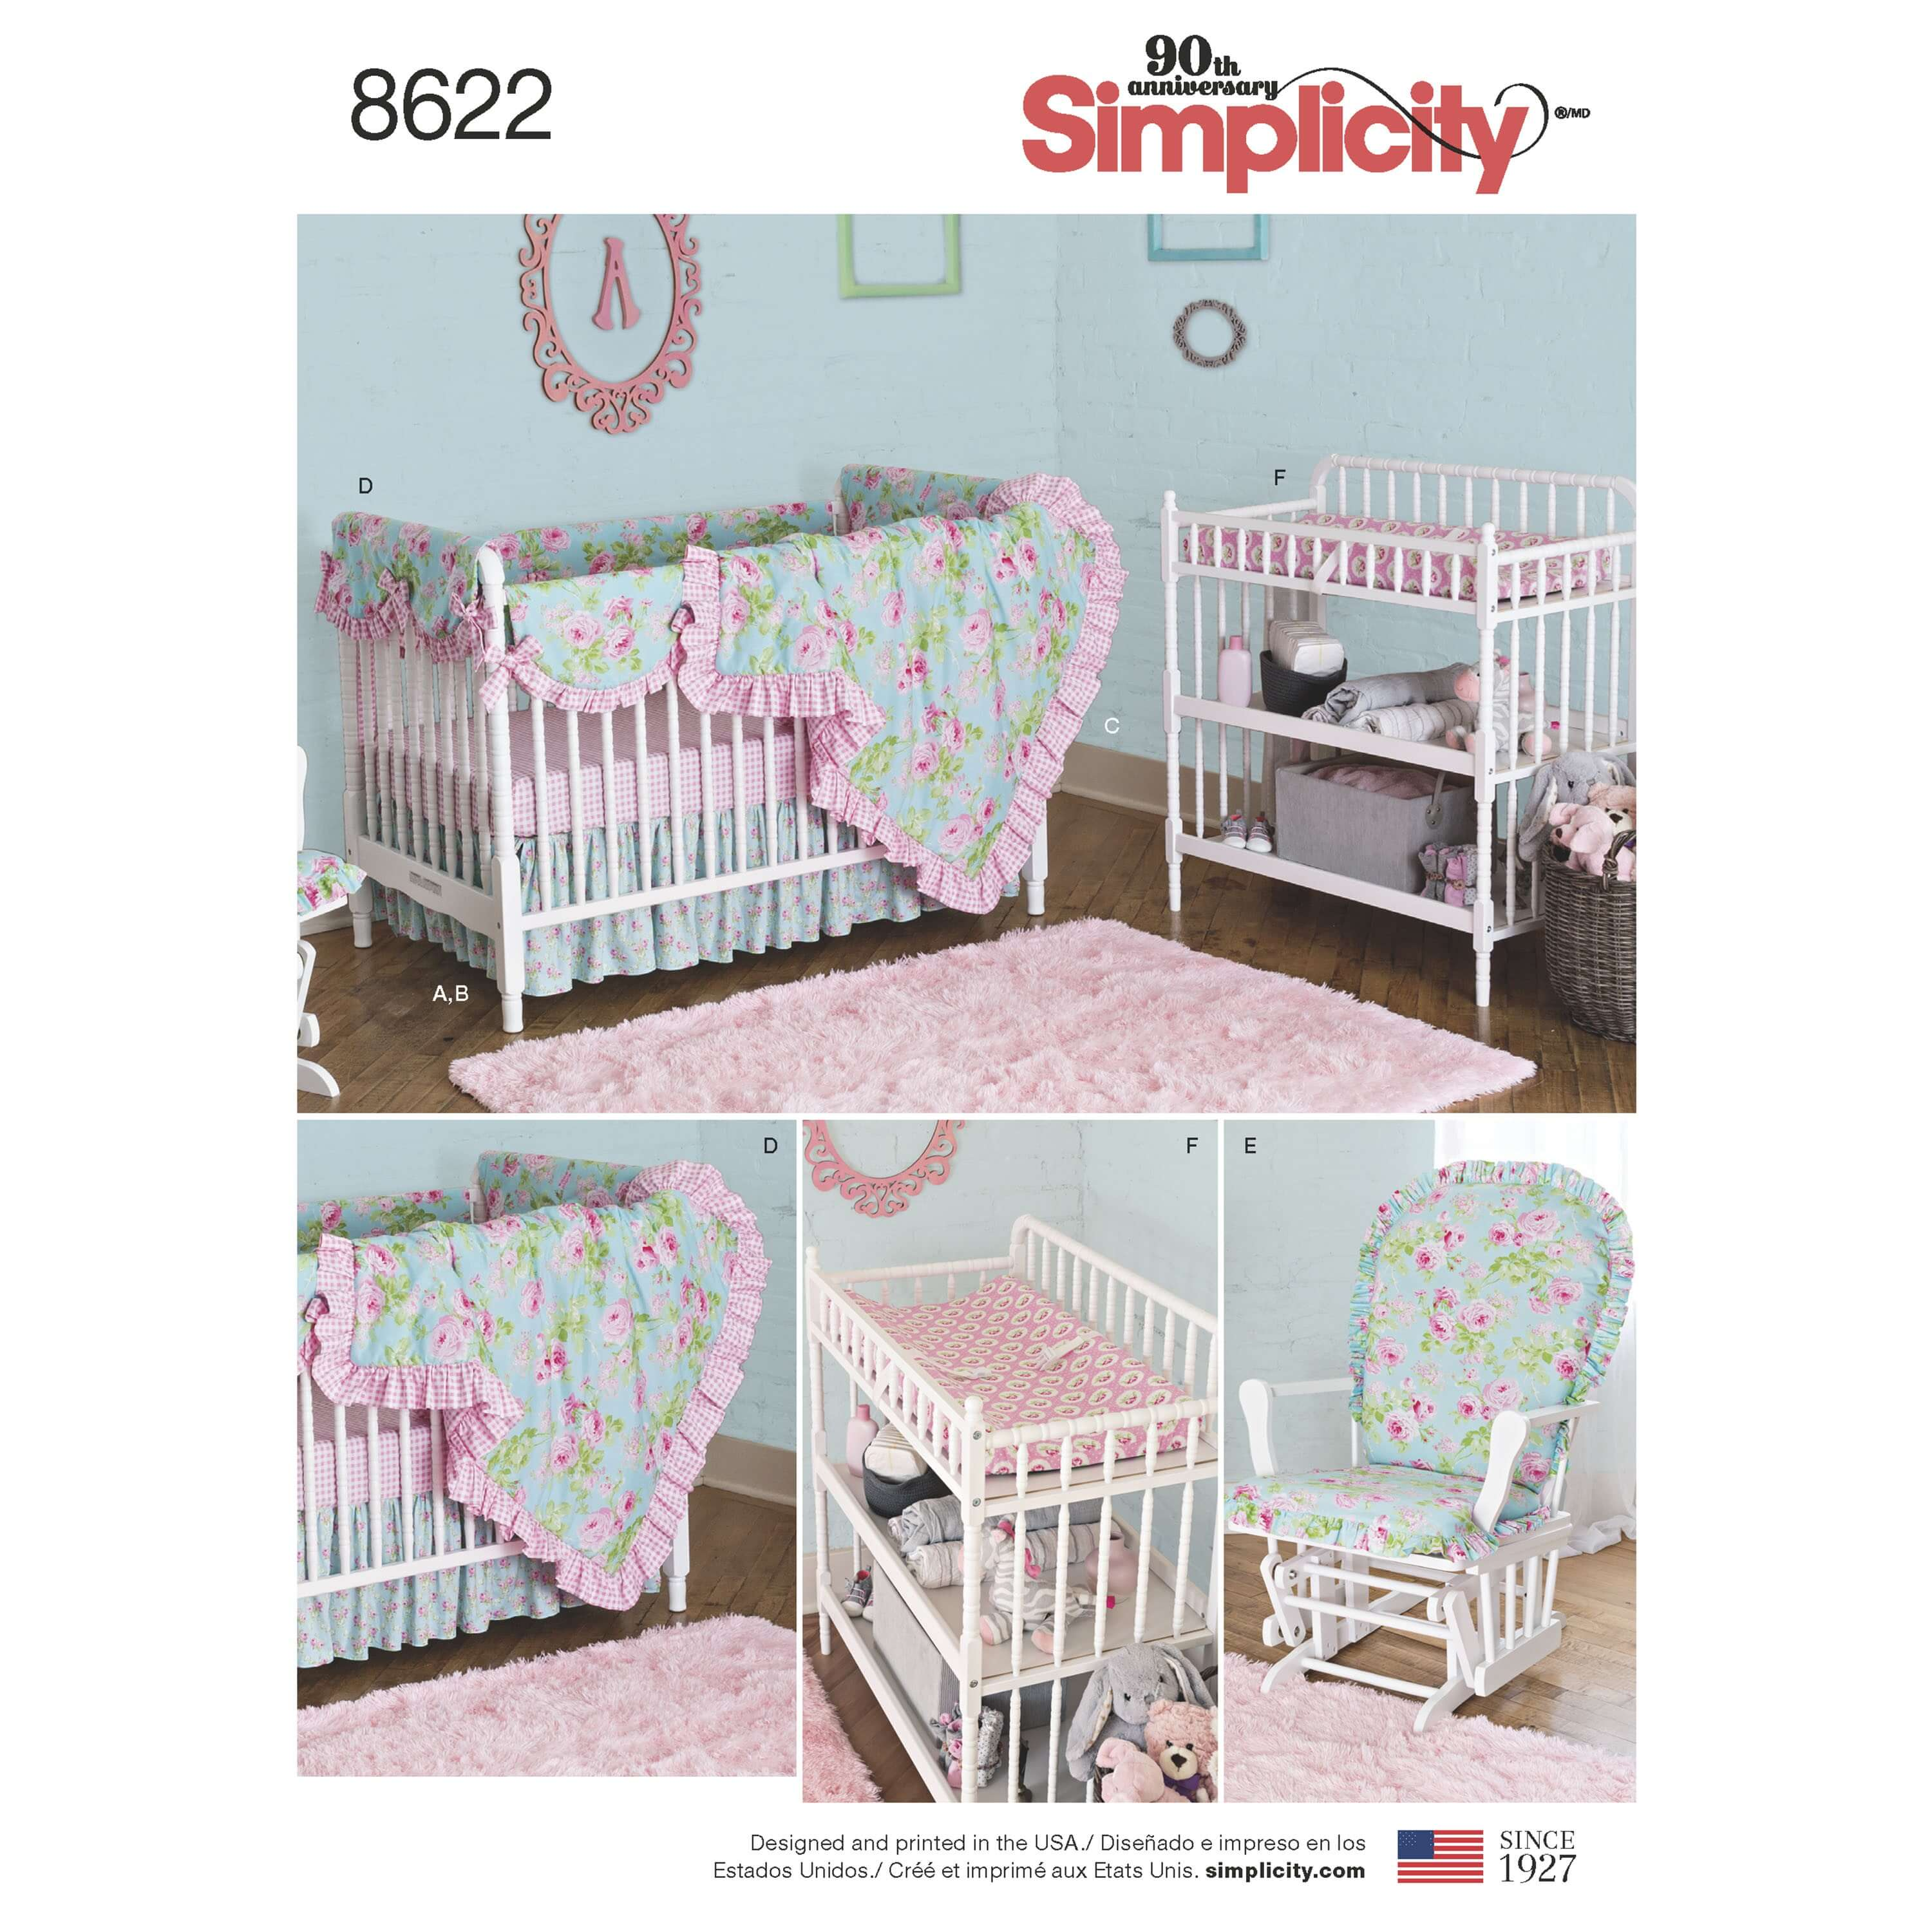 Simplicity Sewing Pattern 8622 Baby Nursery Decor Home Furnishings